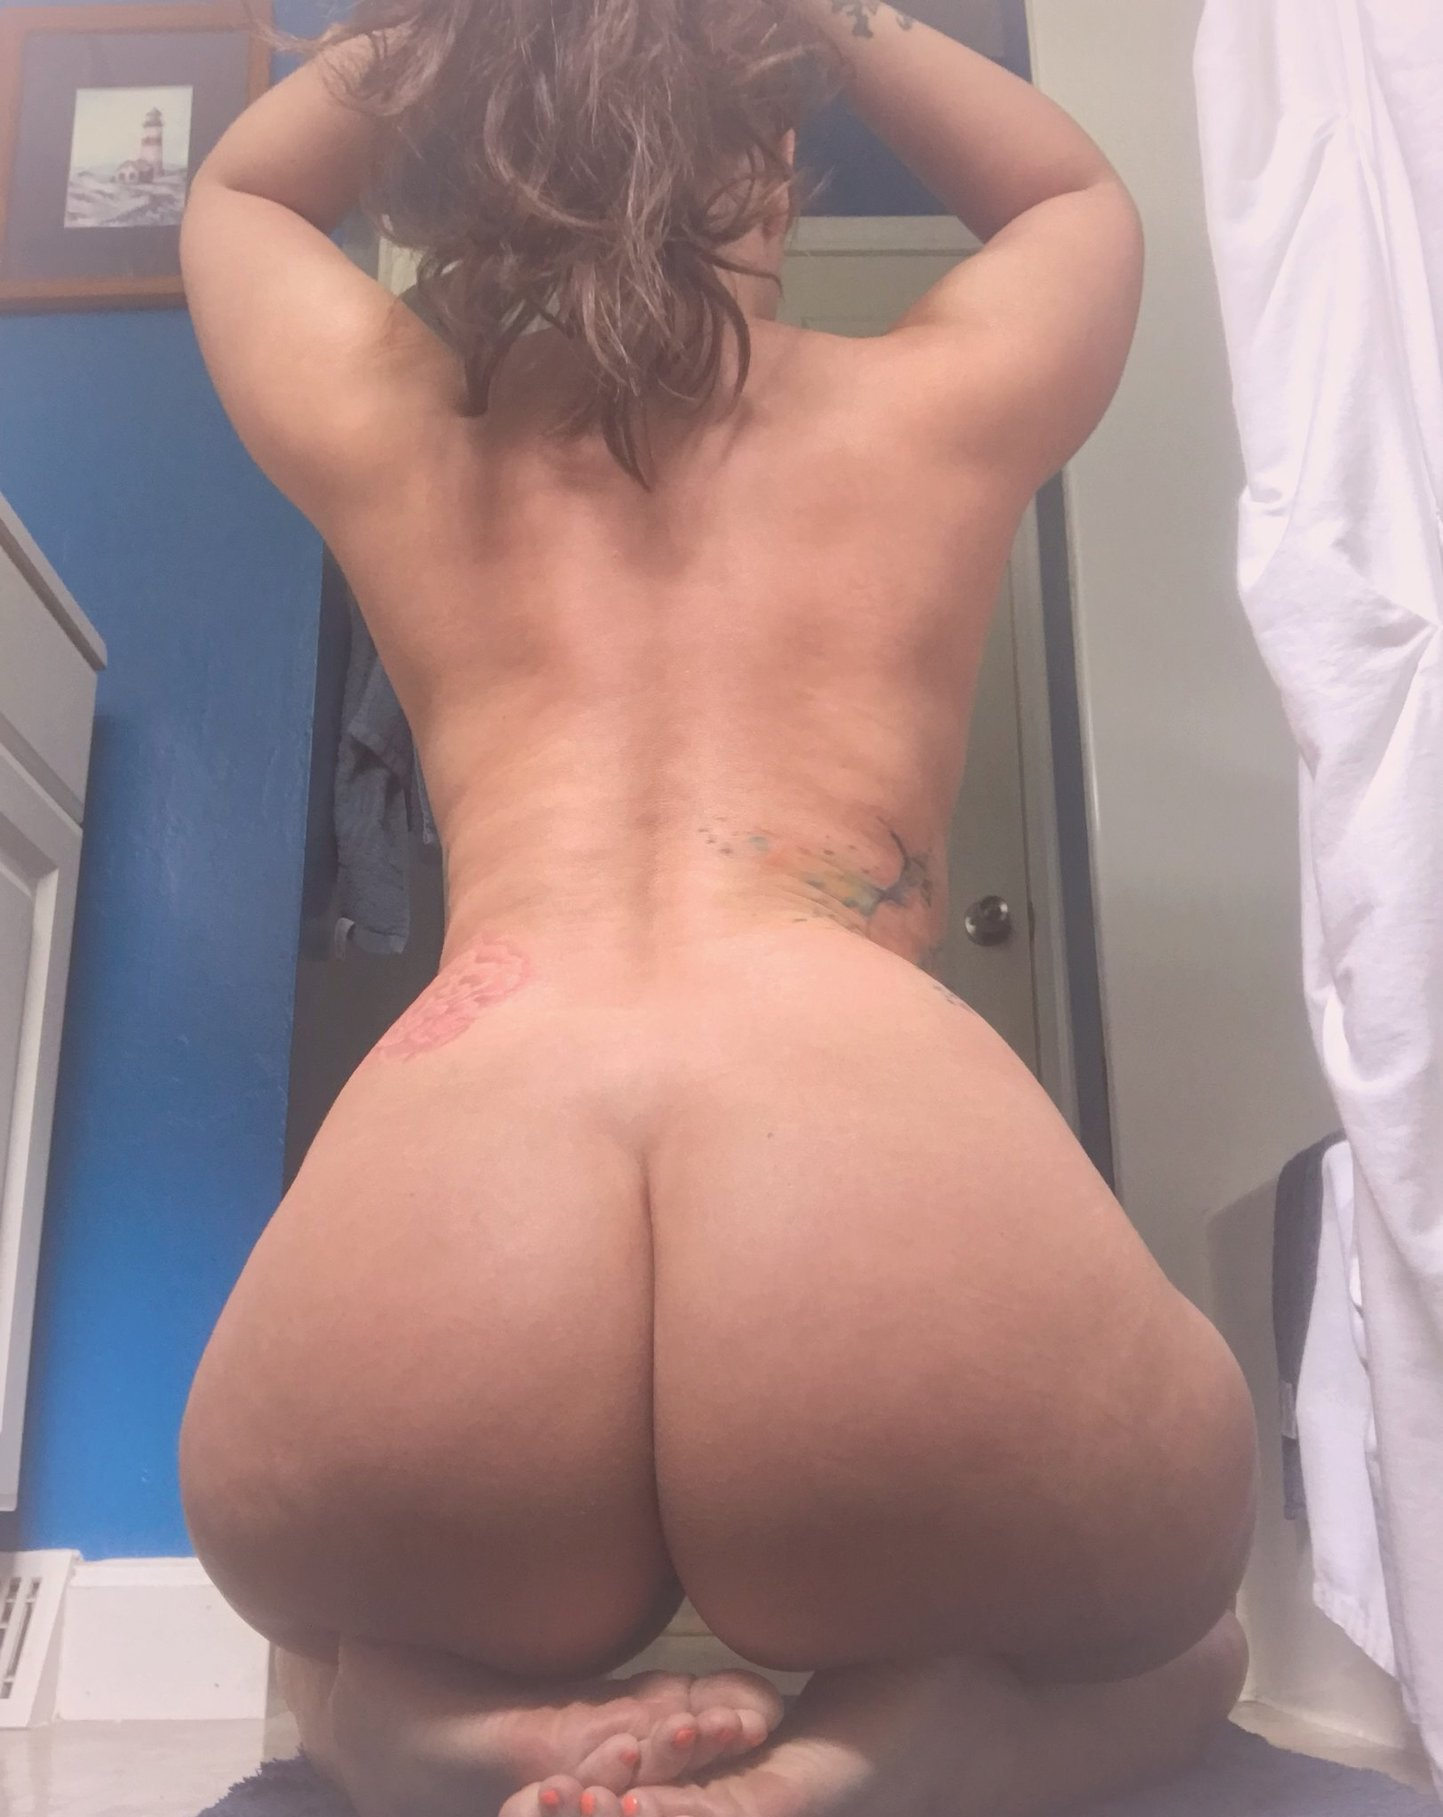 Gia Paige Giapaigex Onlyfans Nude Leaks 0028